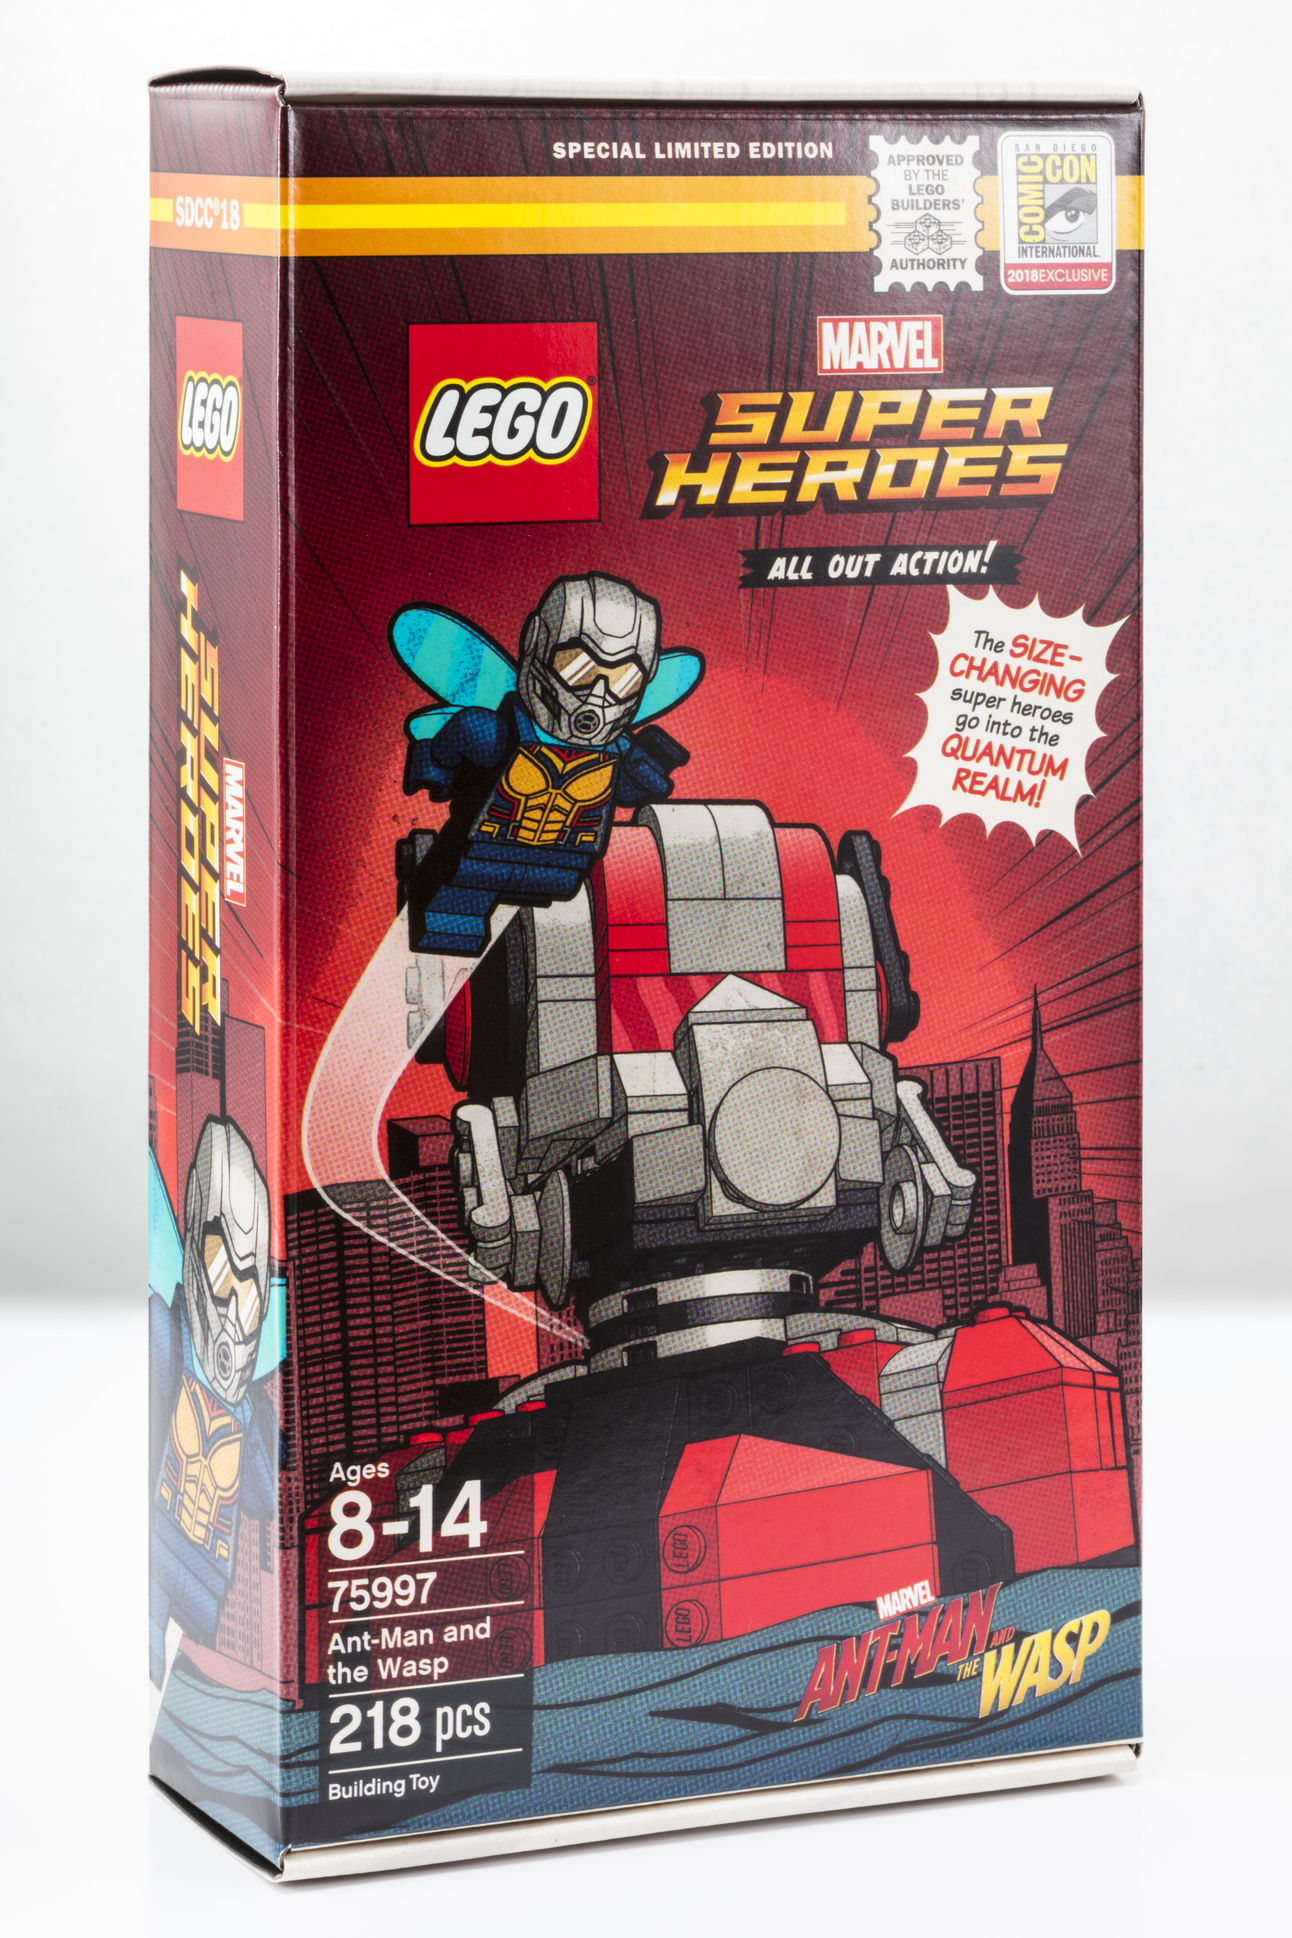 LEGO_SDCC_2018_Ant-Man_and_the_Wasp_Packaging